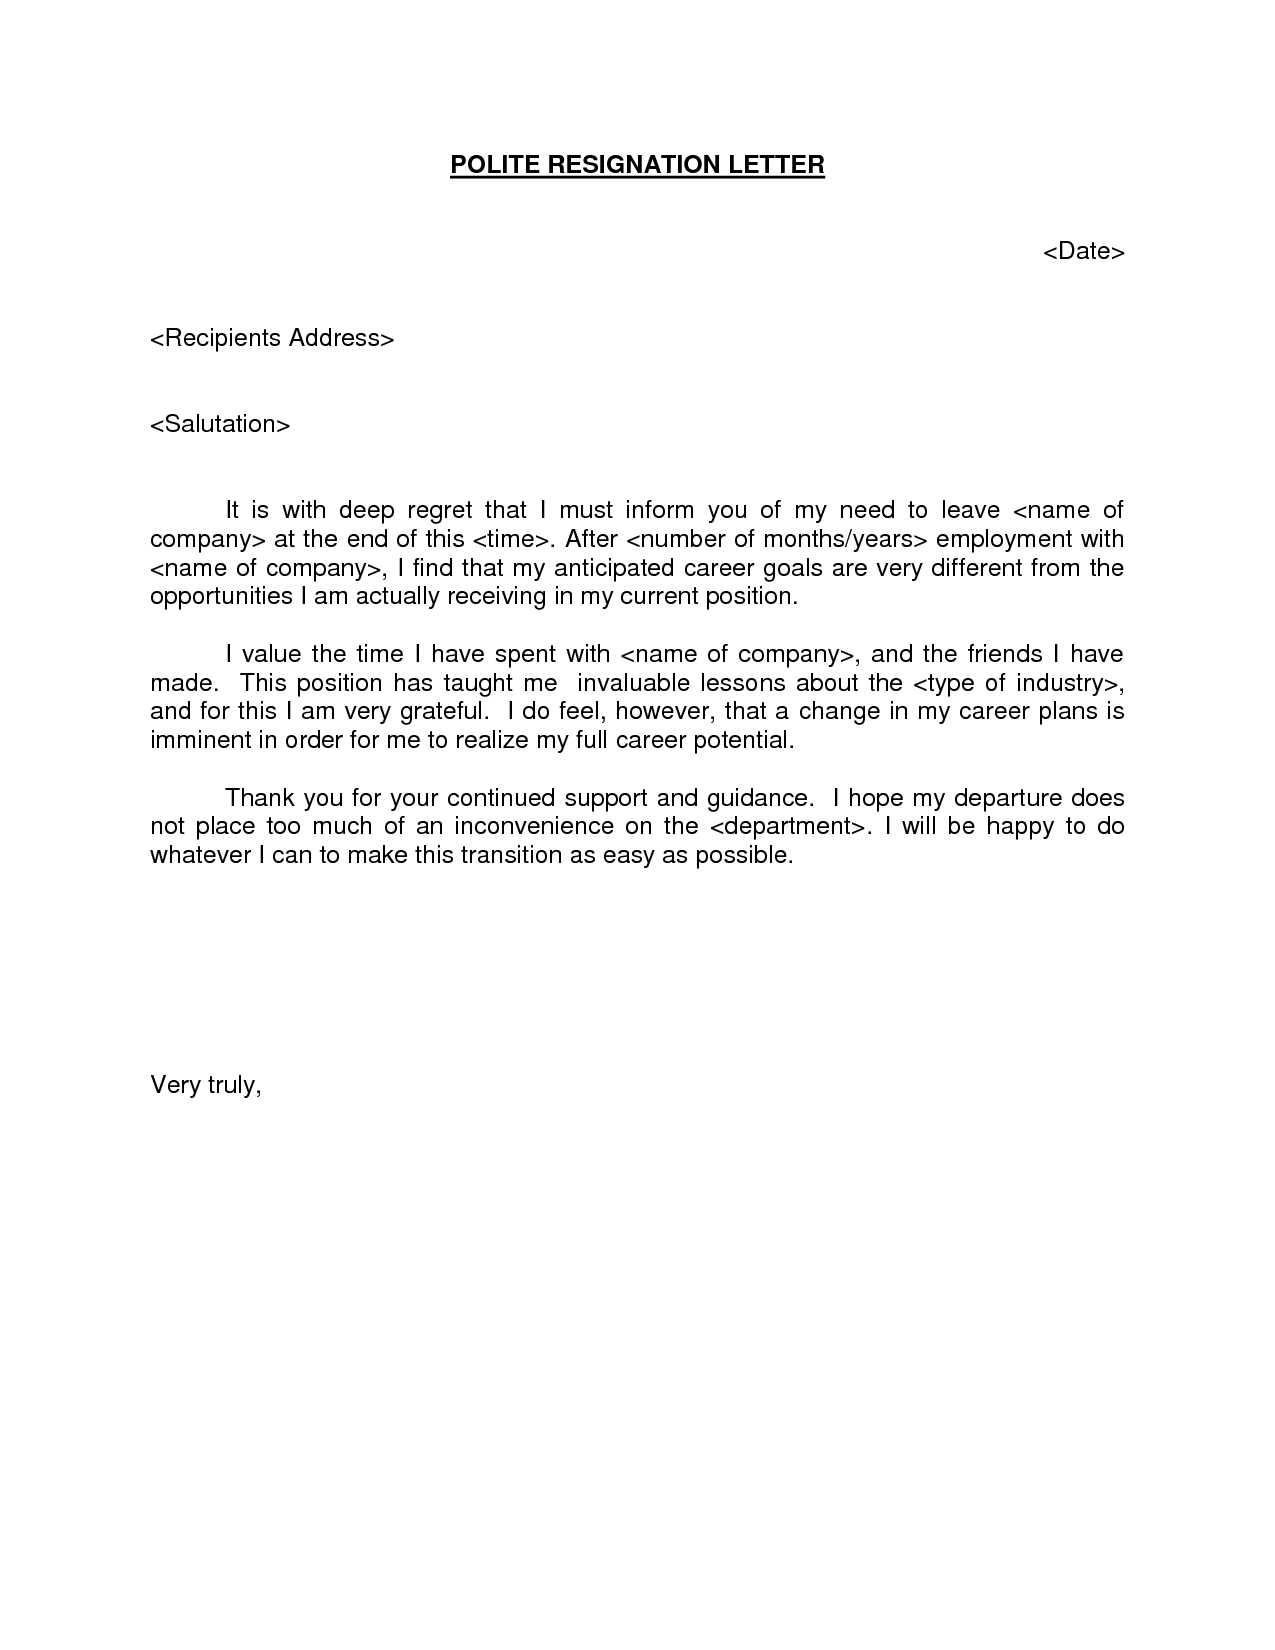 Letter Of Intent to Retire Template - Polite Resignation Letter Bestdealformoneywriting A Letter